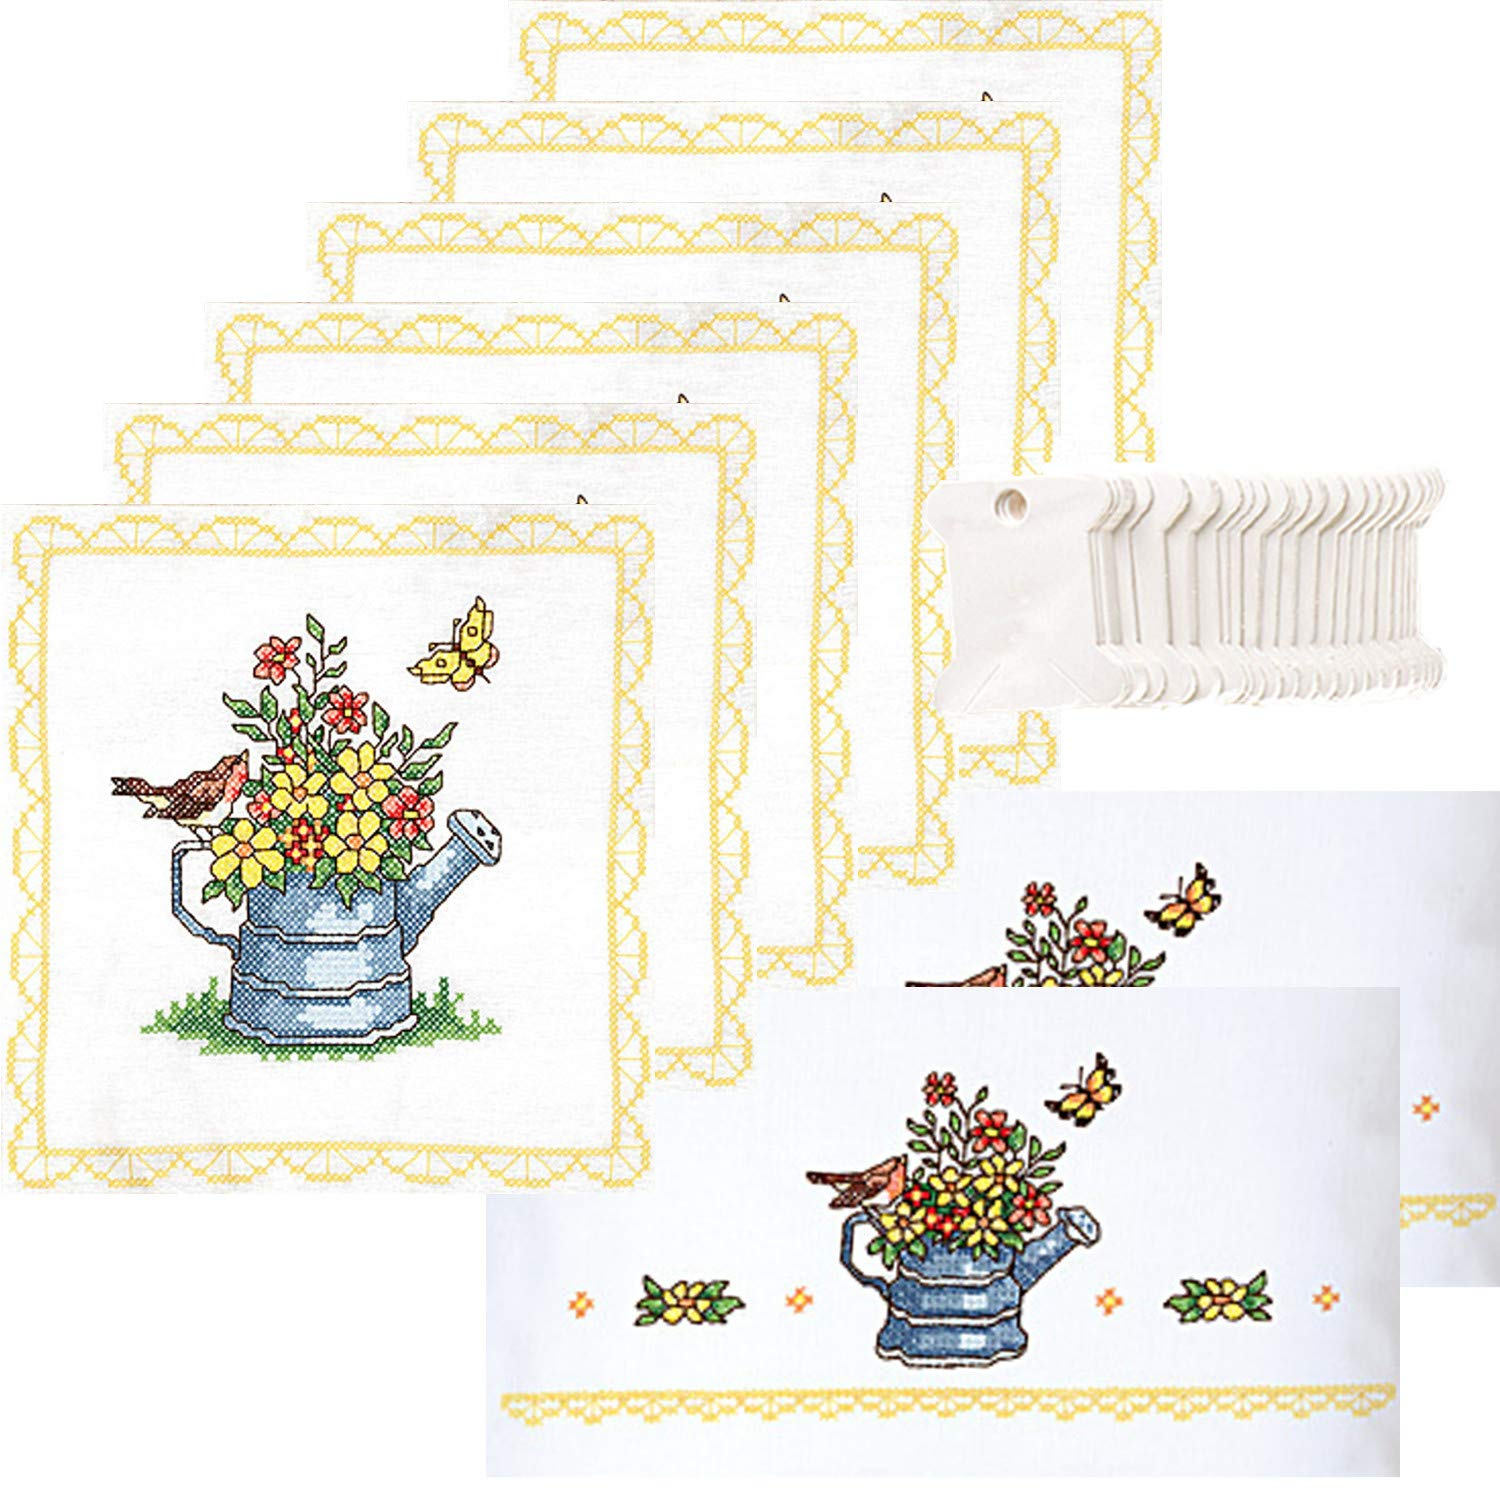 Embroidery Quilt Label Designs Free Embroidery Patterns